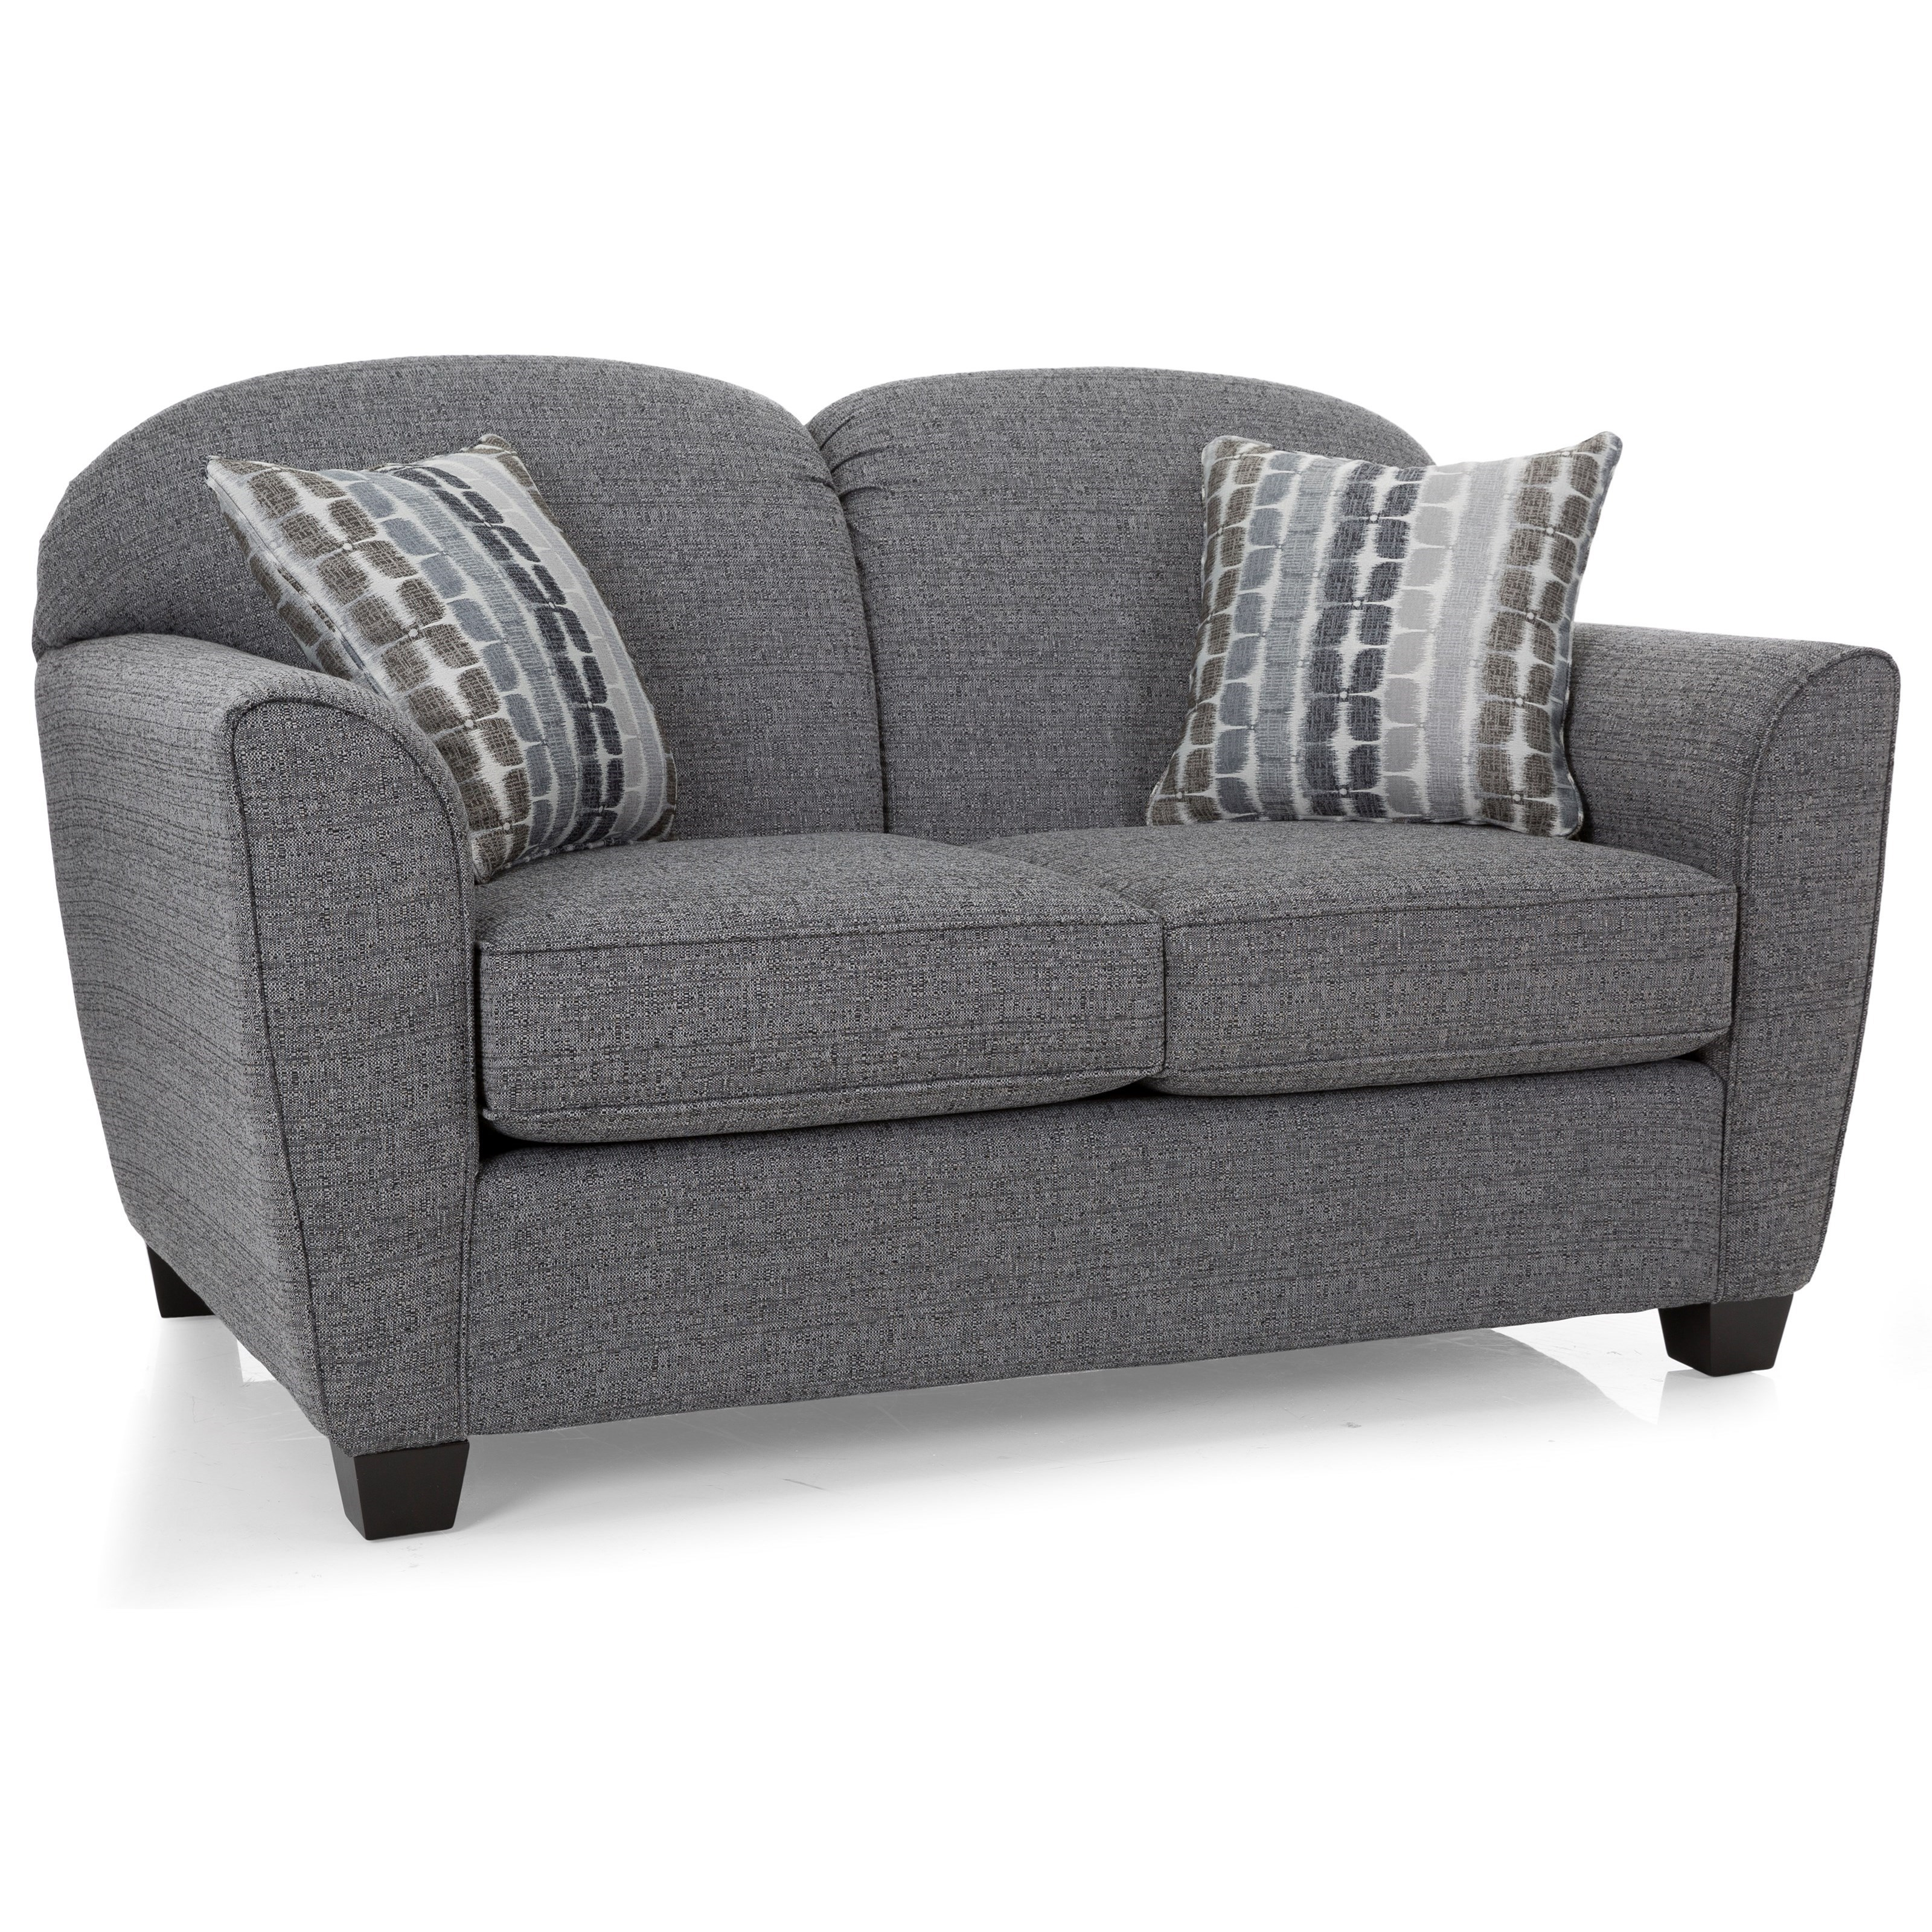 2317 Loveseat by Decor-Rest at Rooms for Less